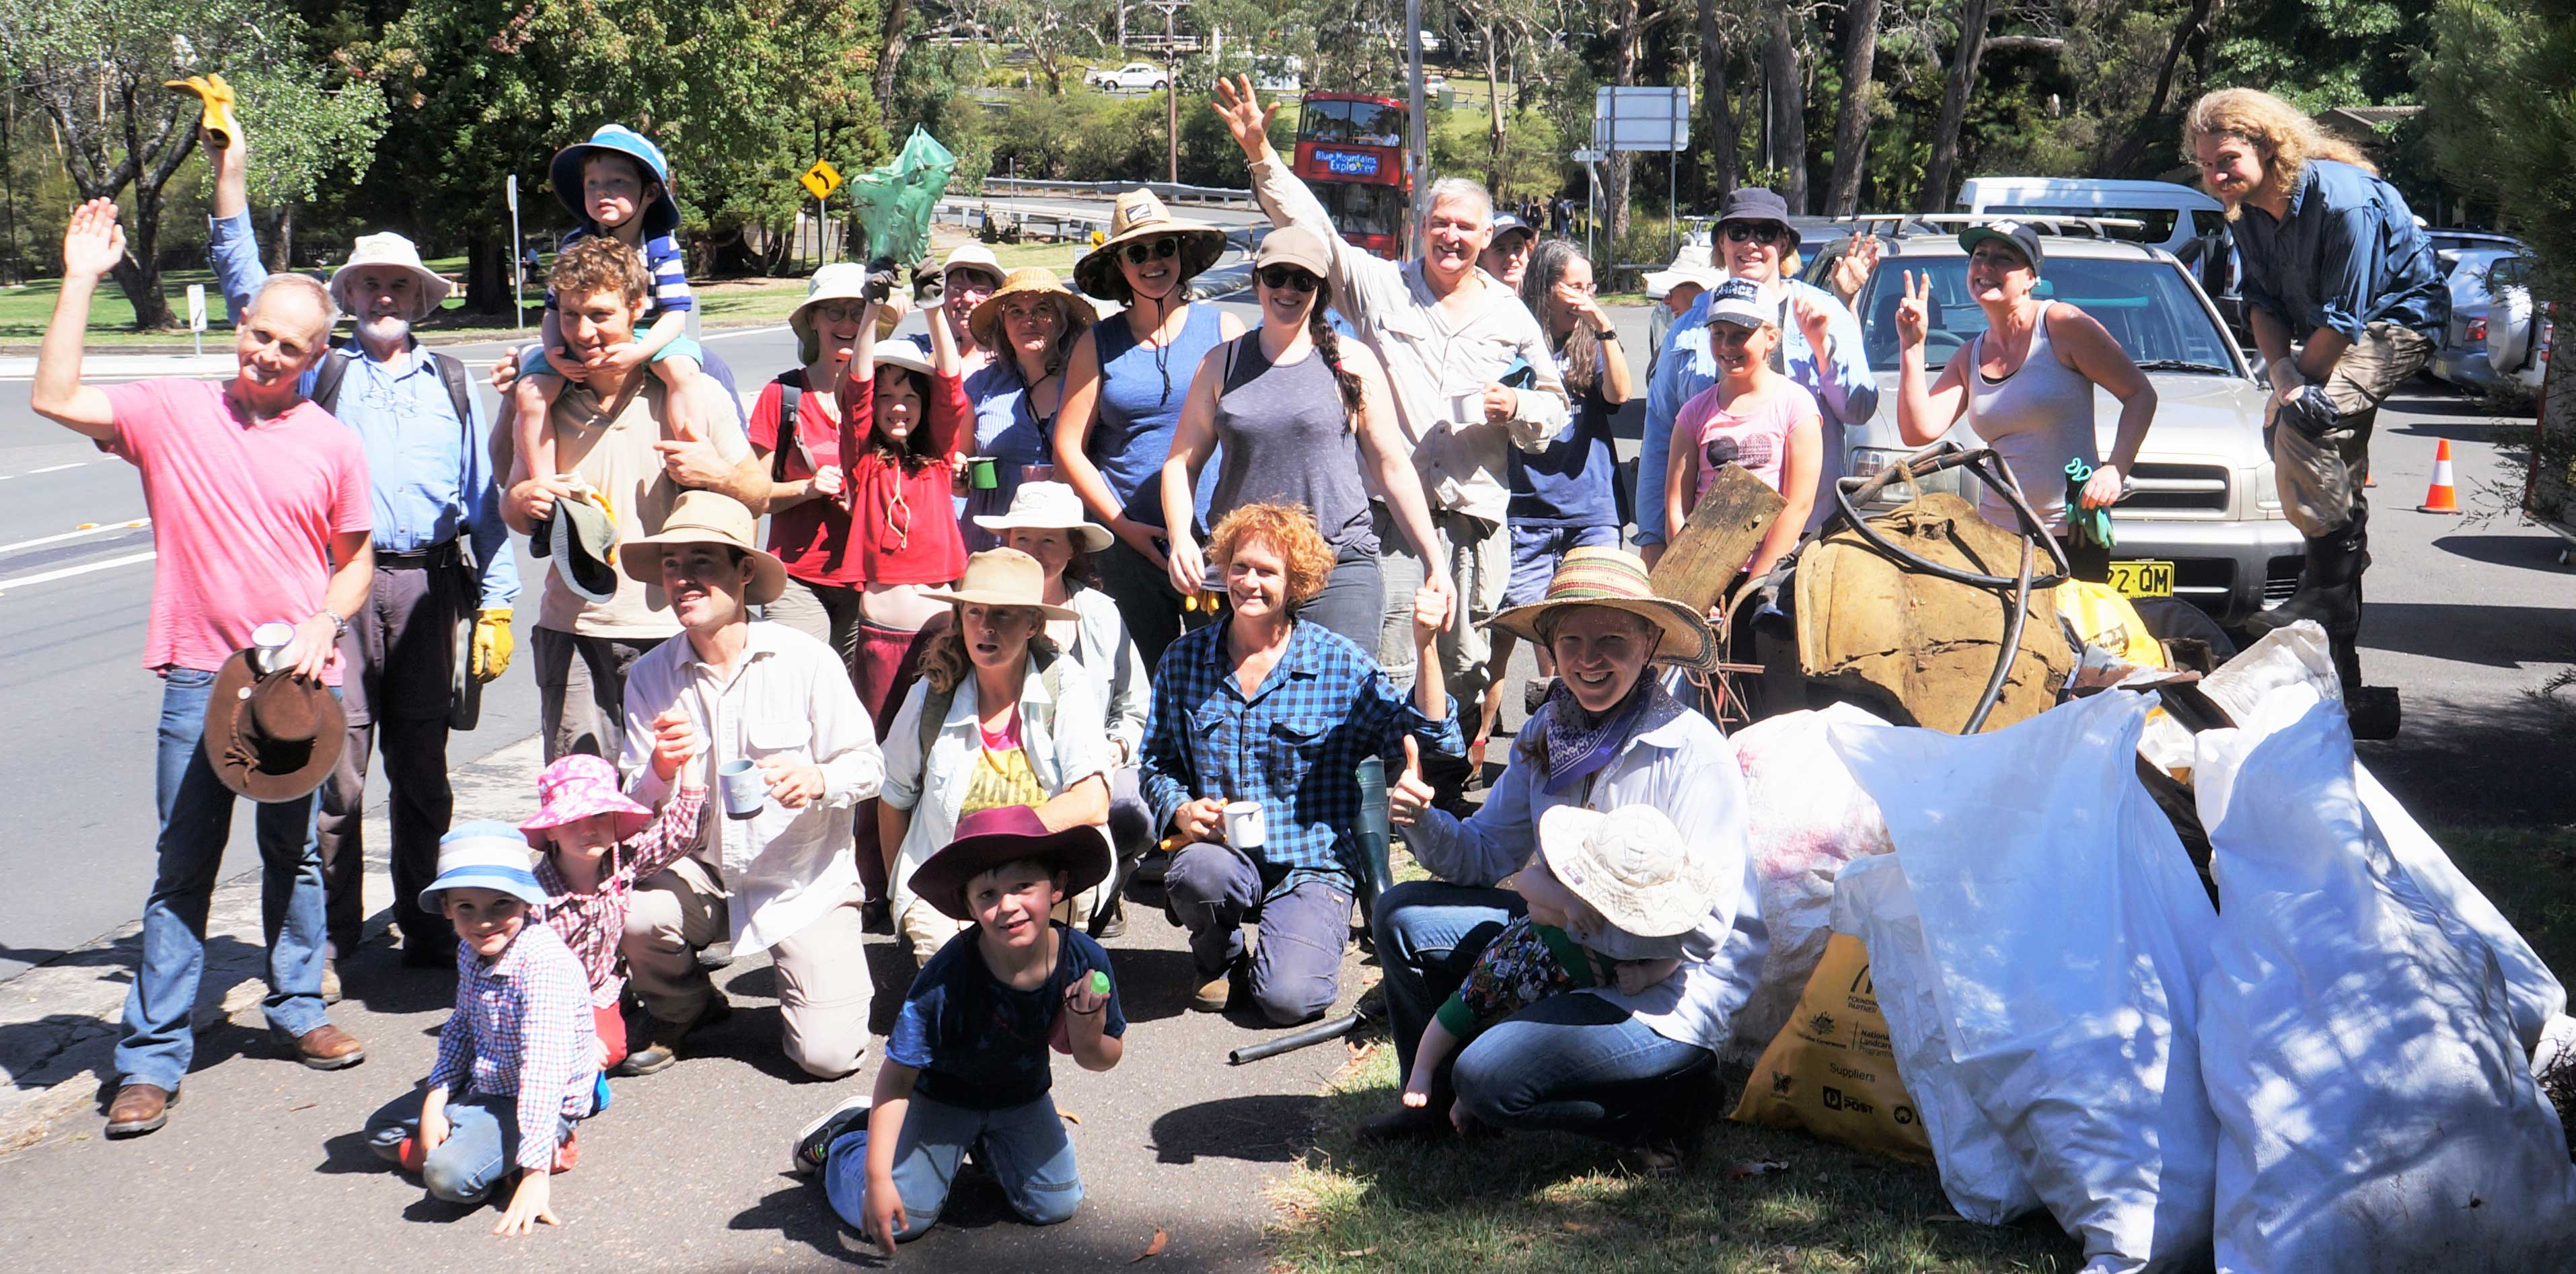 Garguree Swampcare group at Maple Grove, Katoomba on Clean Up Australia Day 2018.